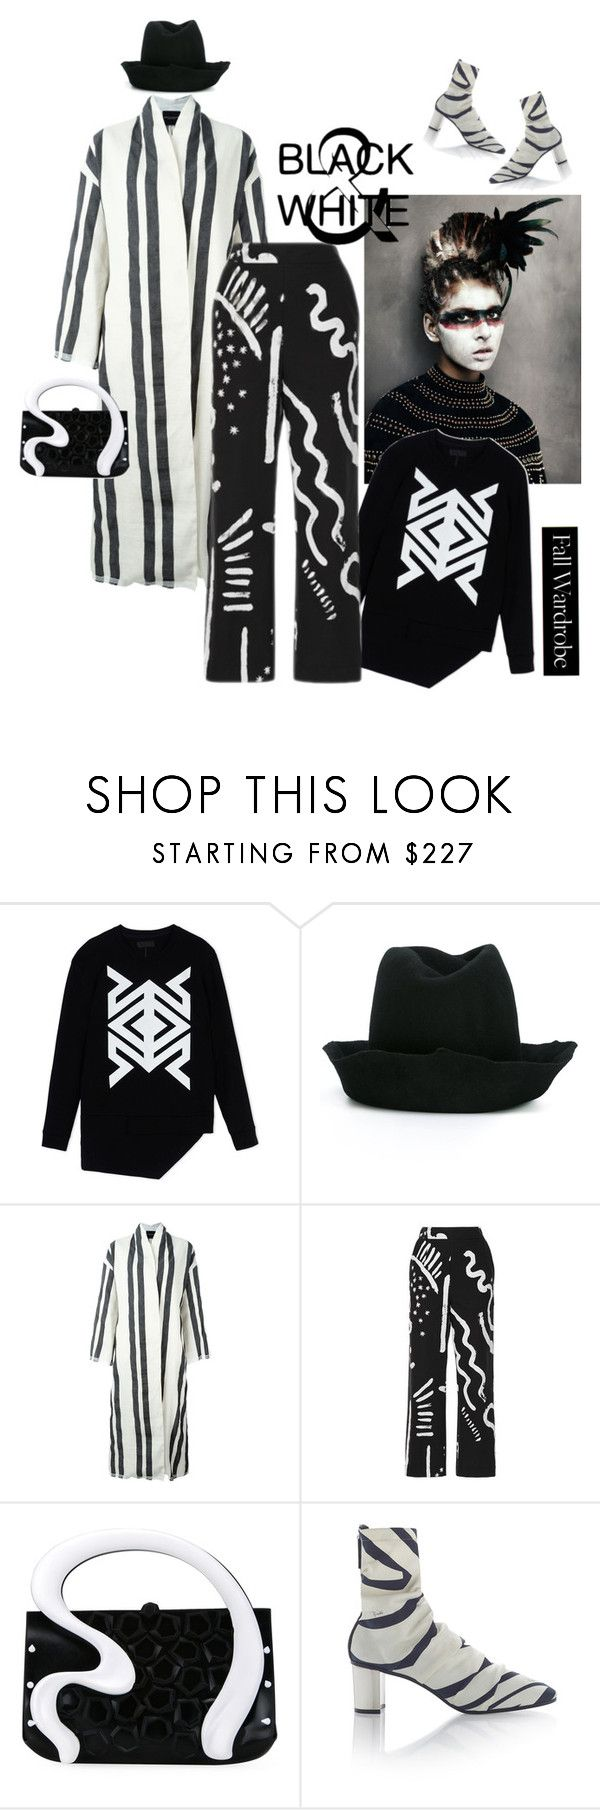 """""""Black and White"""" by naturalbornstyler ❤ liked on Polyvore featuring D.GNAK by KANG.D, REINHARD PLANK, Erika Cavallini Semi-Couture, Isa Arfen, Gabriella Ingram and Emilio Pucci"""